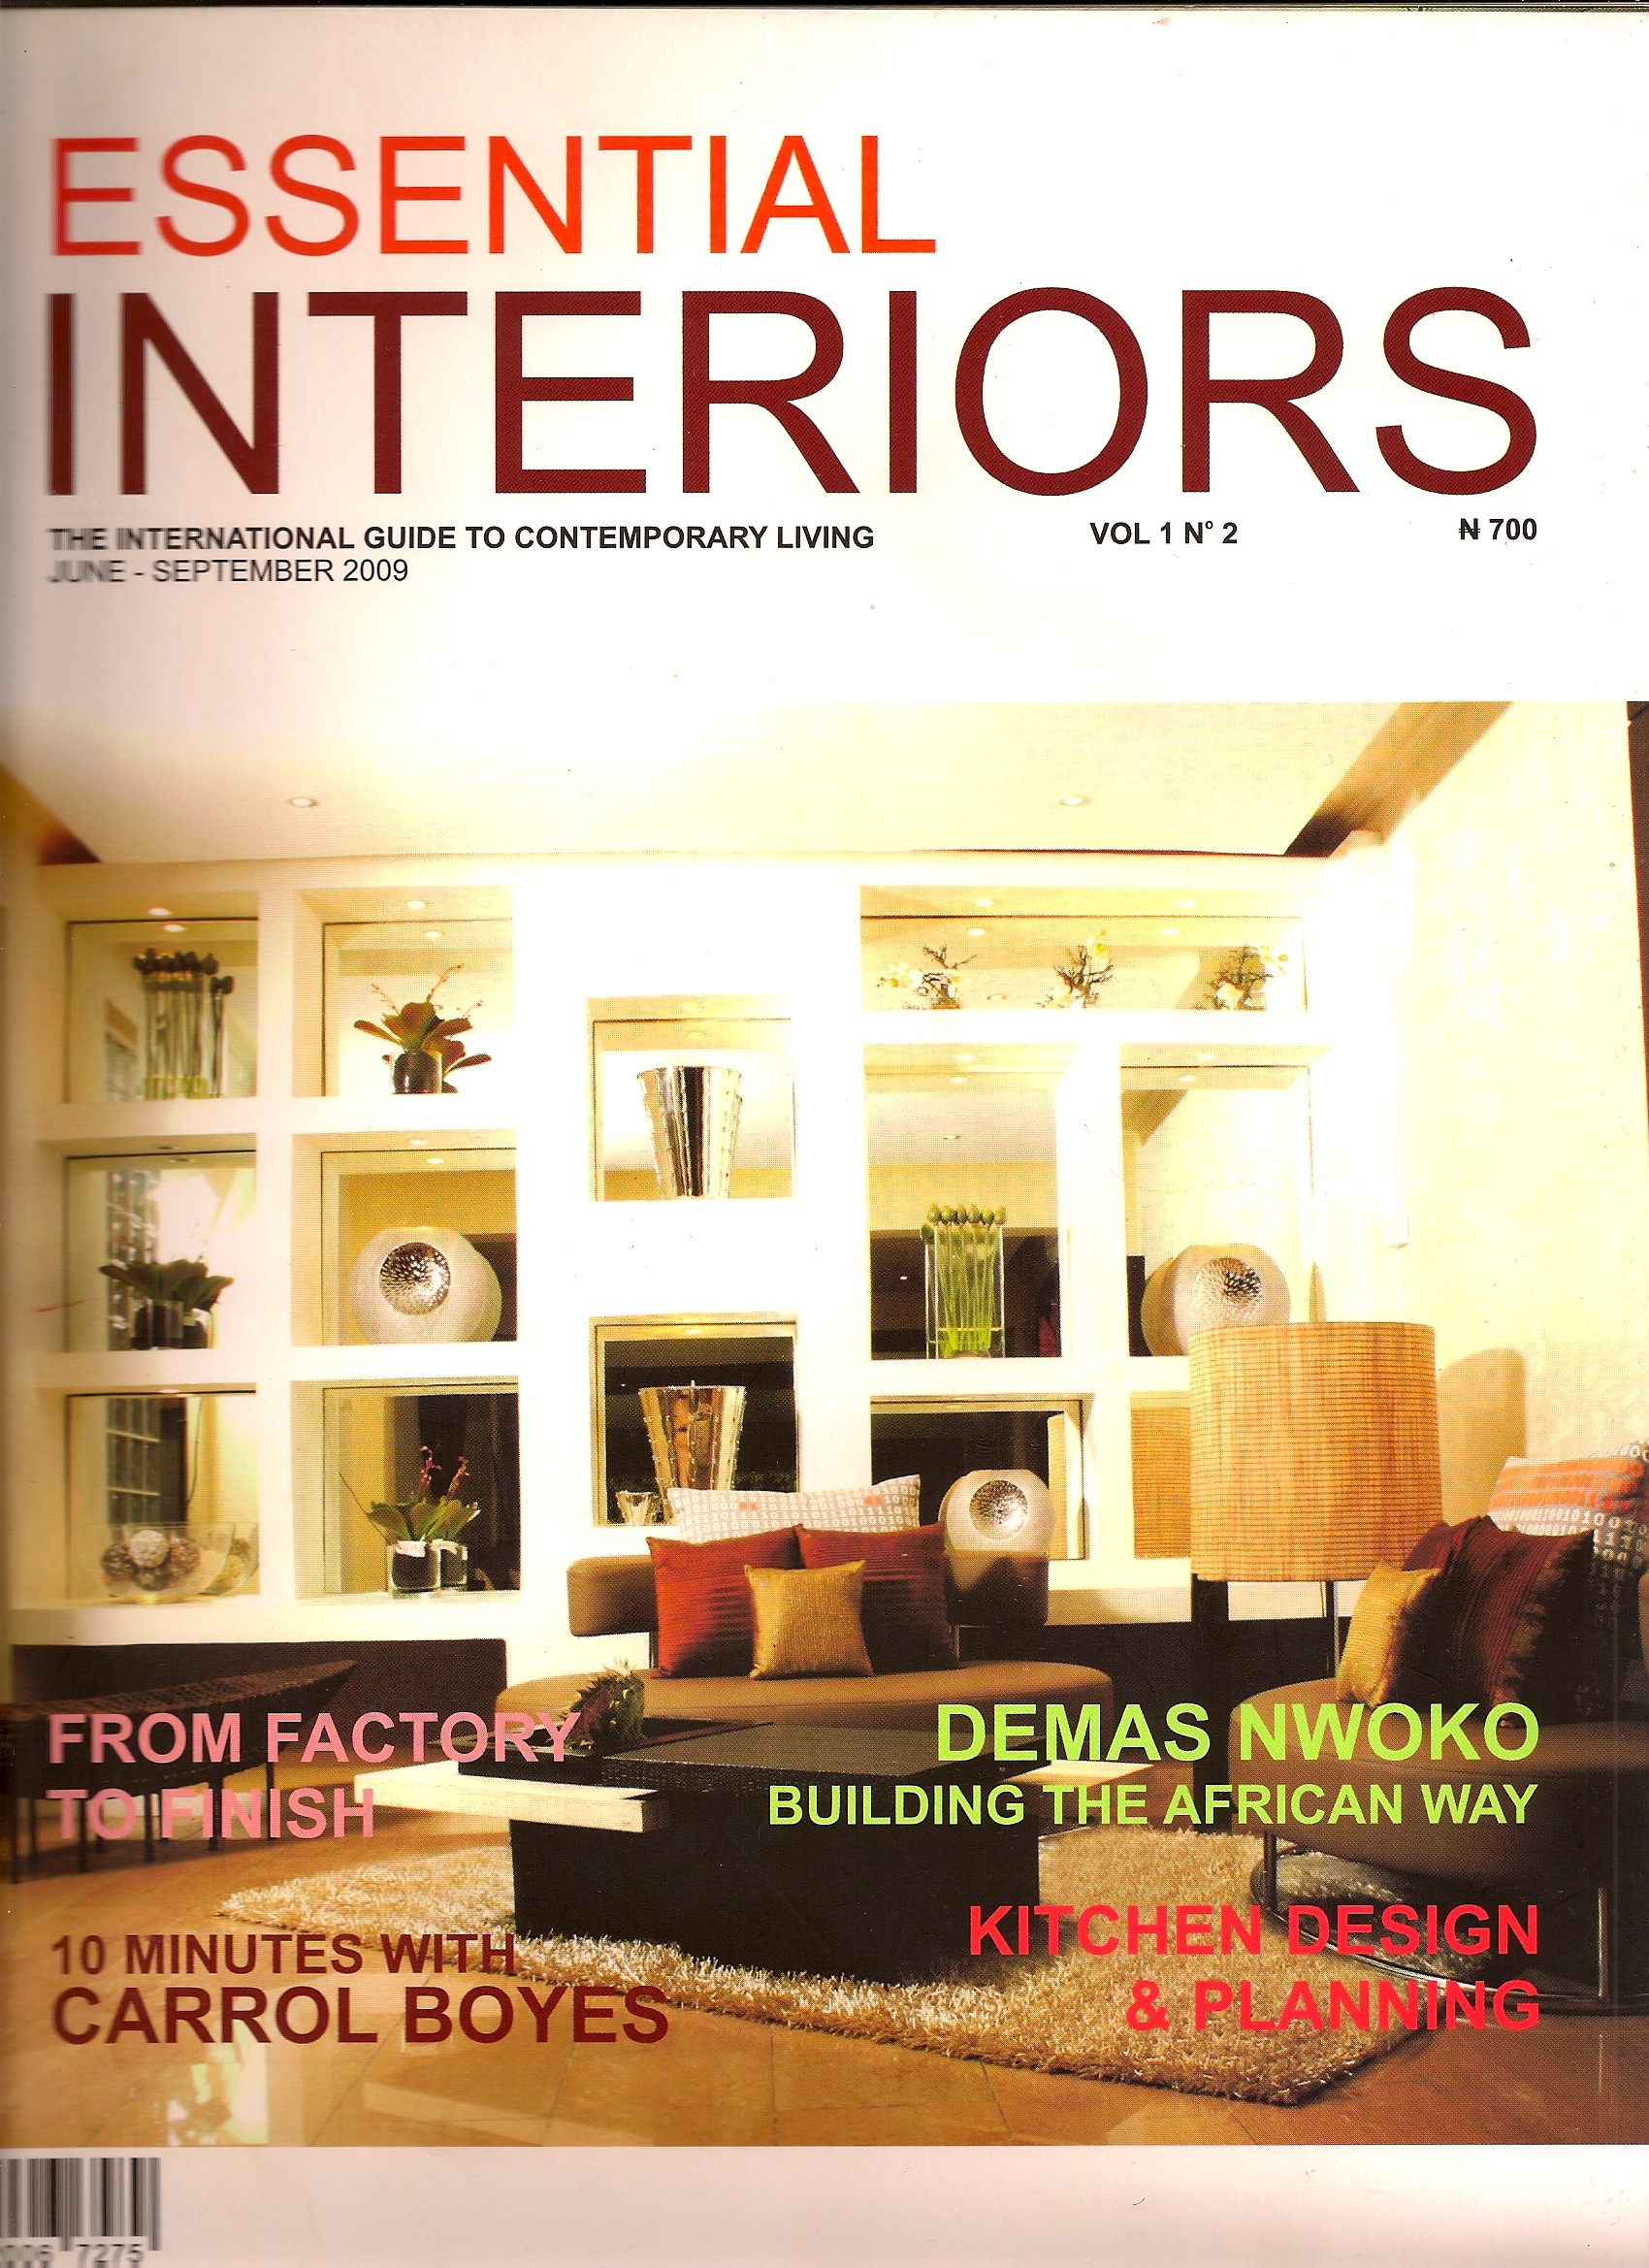 Essential Interiors Magazine Is Nigerias